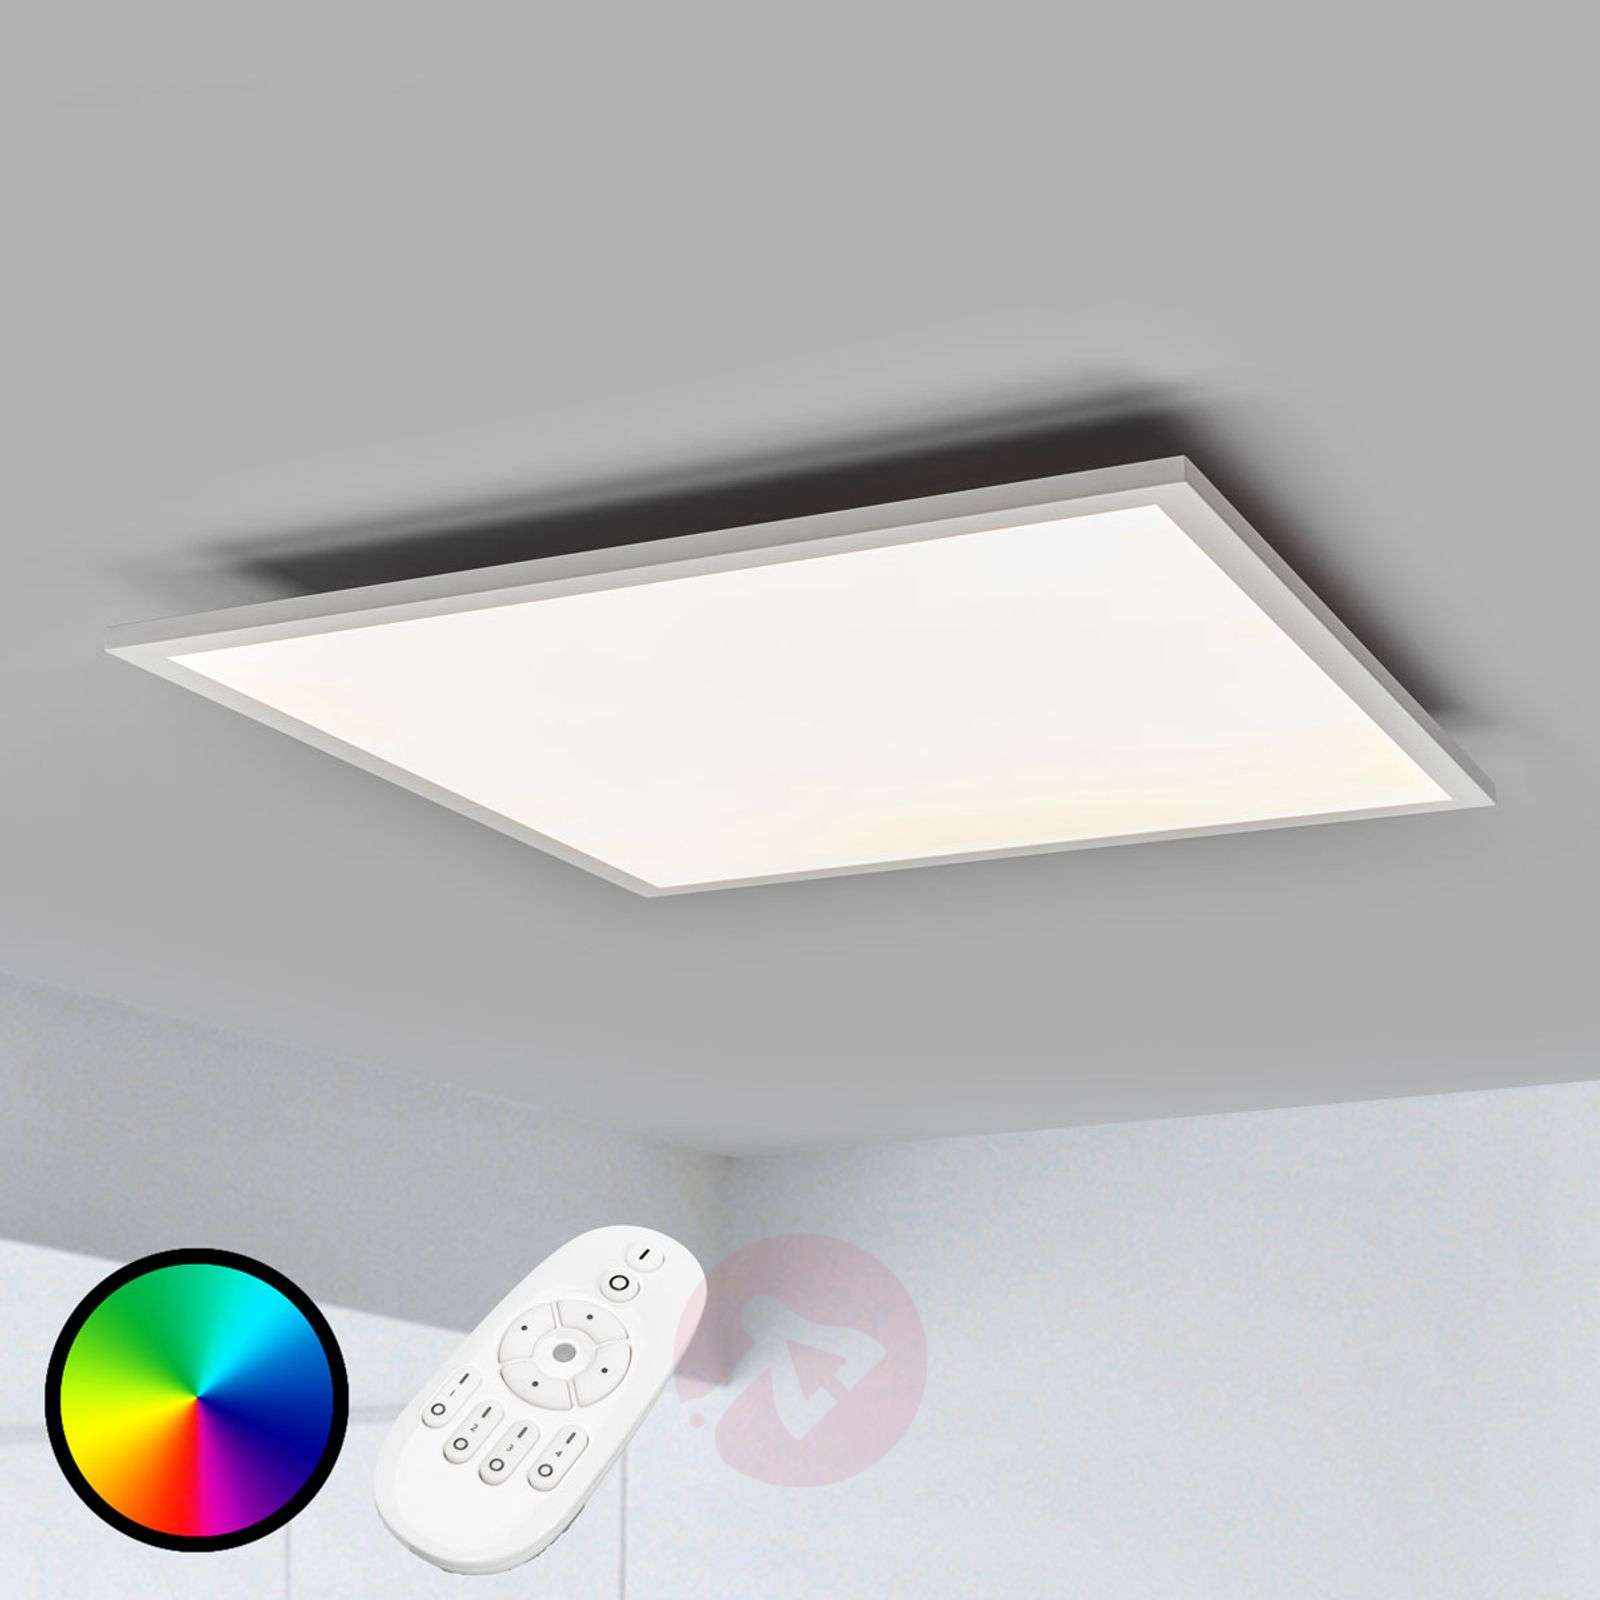 Milian RGB-LED panel with remote control, 62 cm-7620029-02